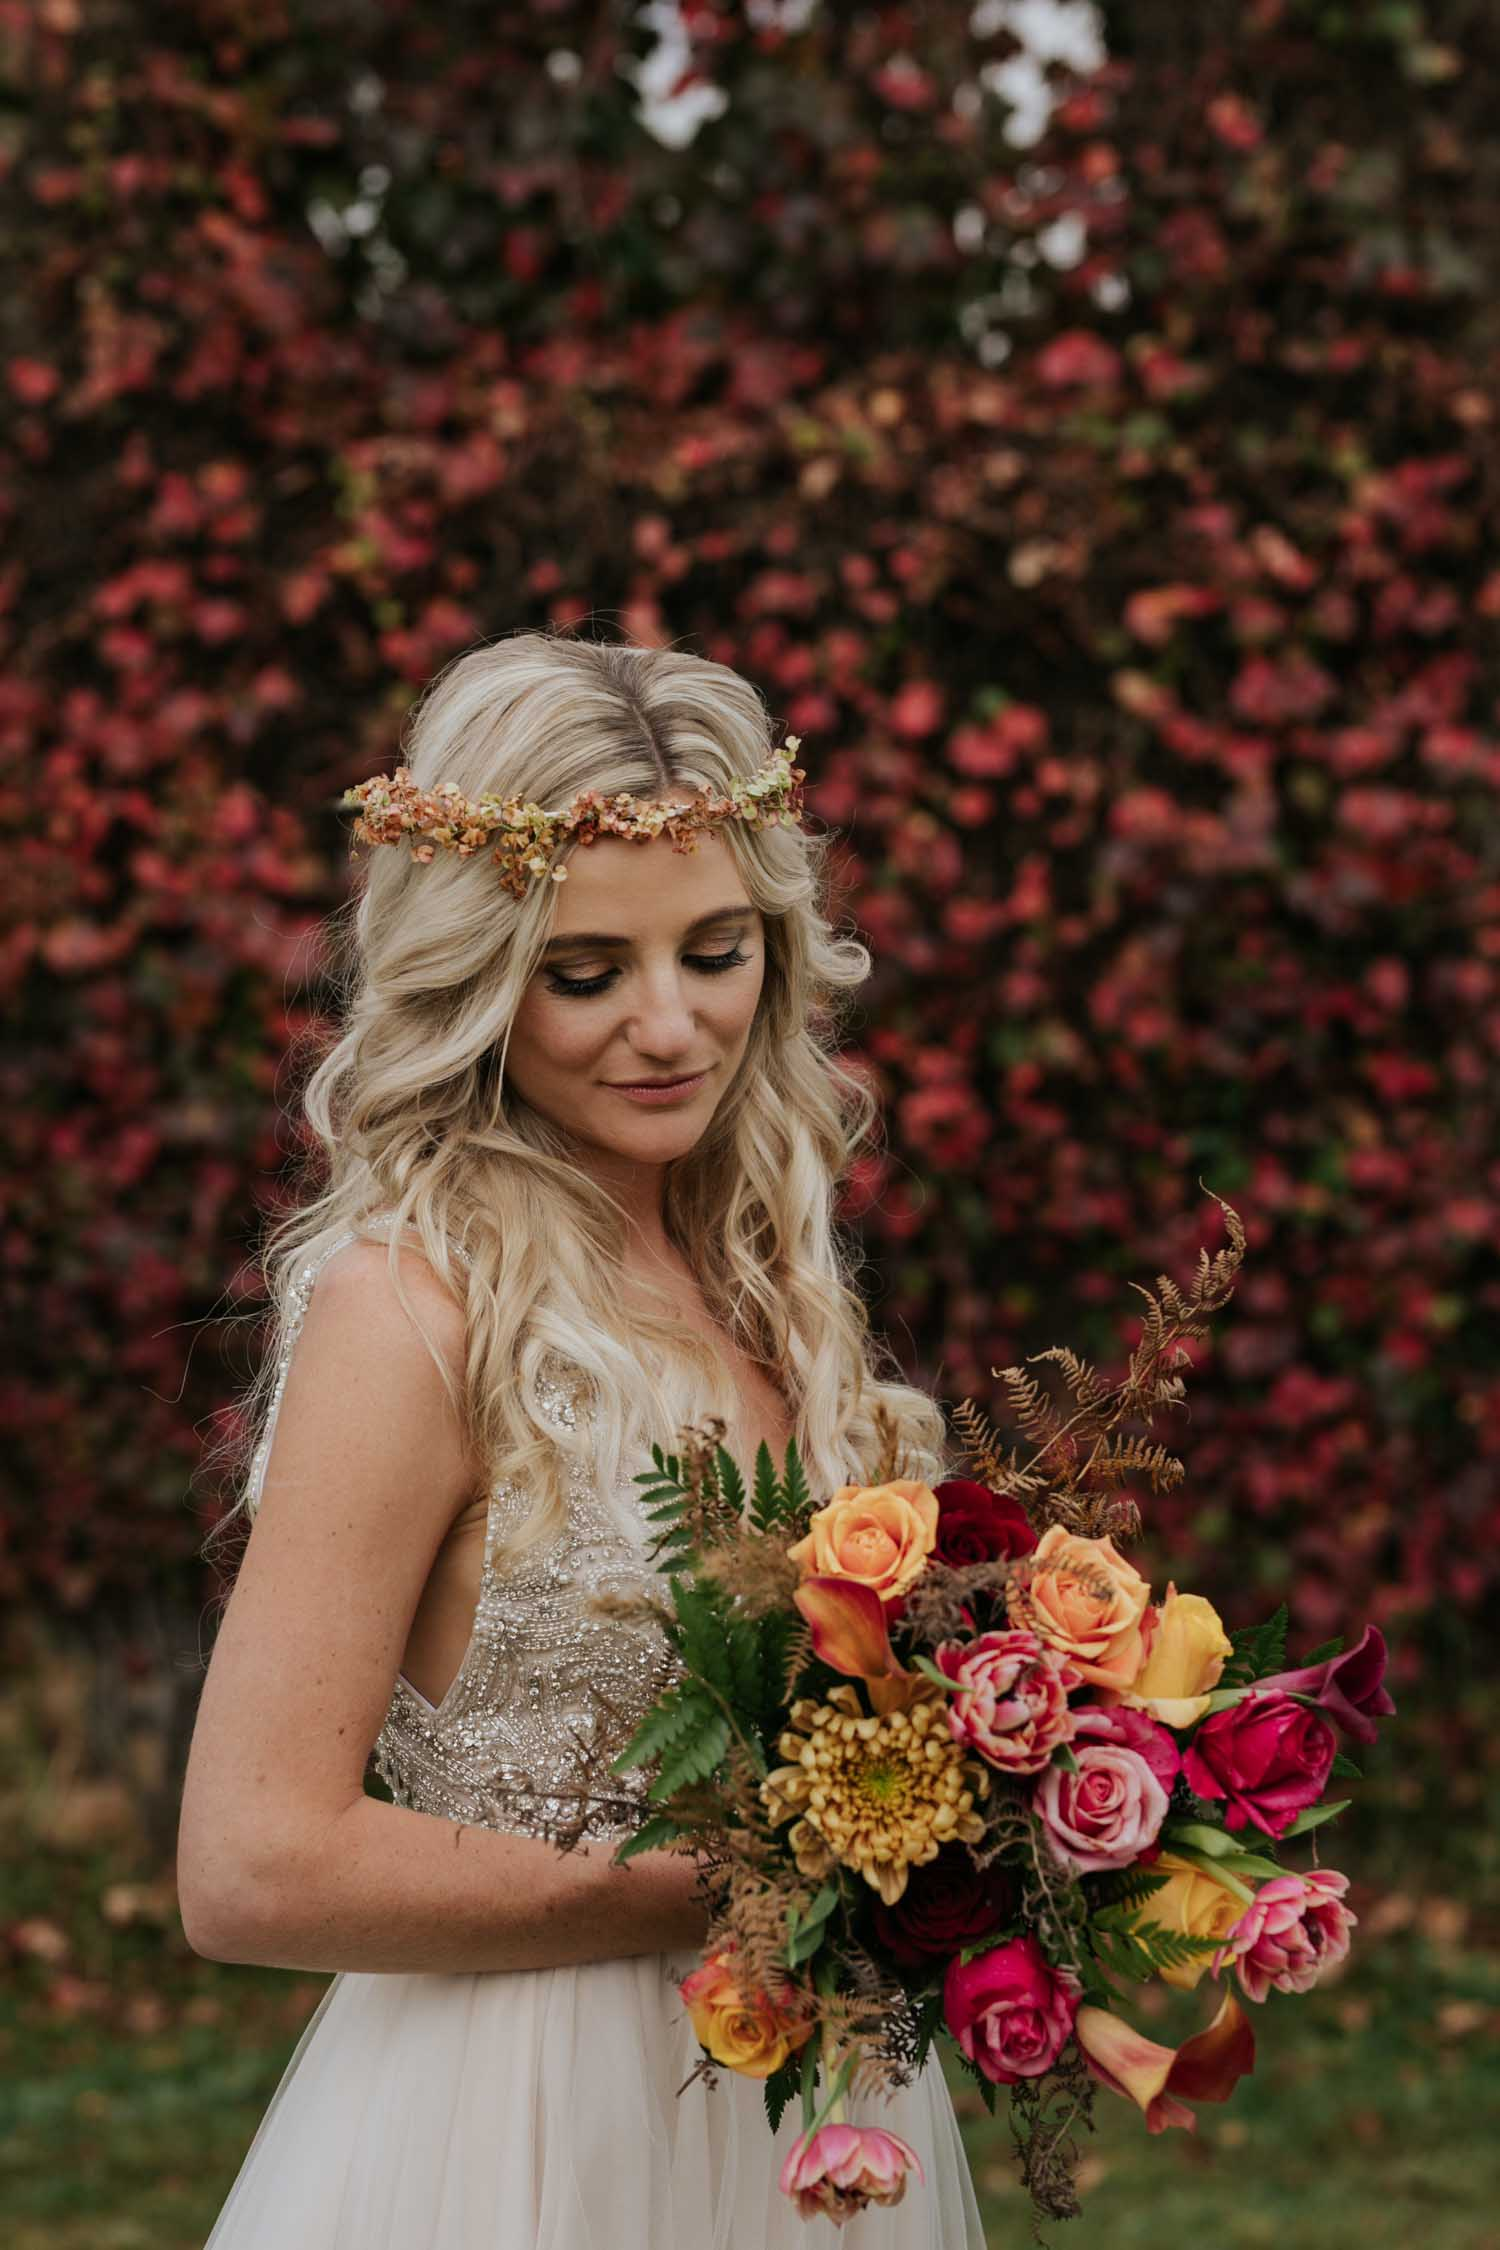 Bride wearing dried flower flower crown and wearing a beaded dress with a jewelled coloured bouquet made up of pink, and burnt orange flowers with dried leaves in it. She looks like Daenerys Targaryen from Game of Thrones.